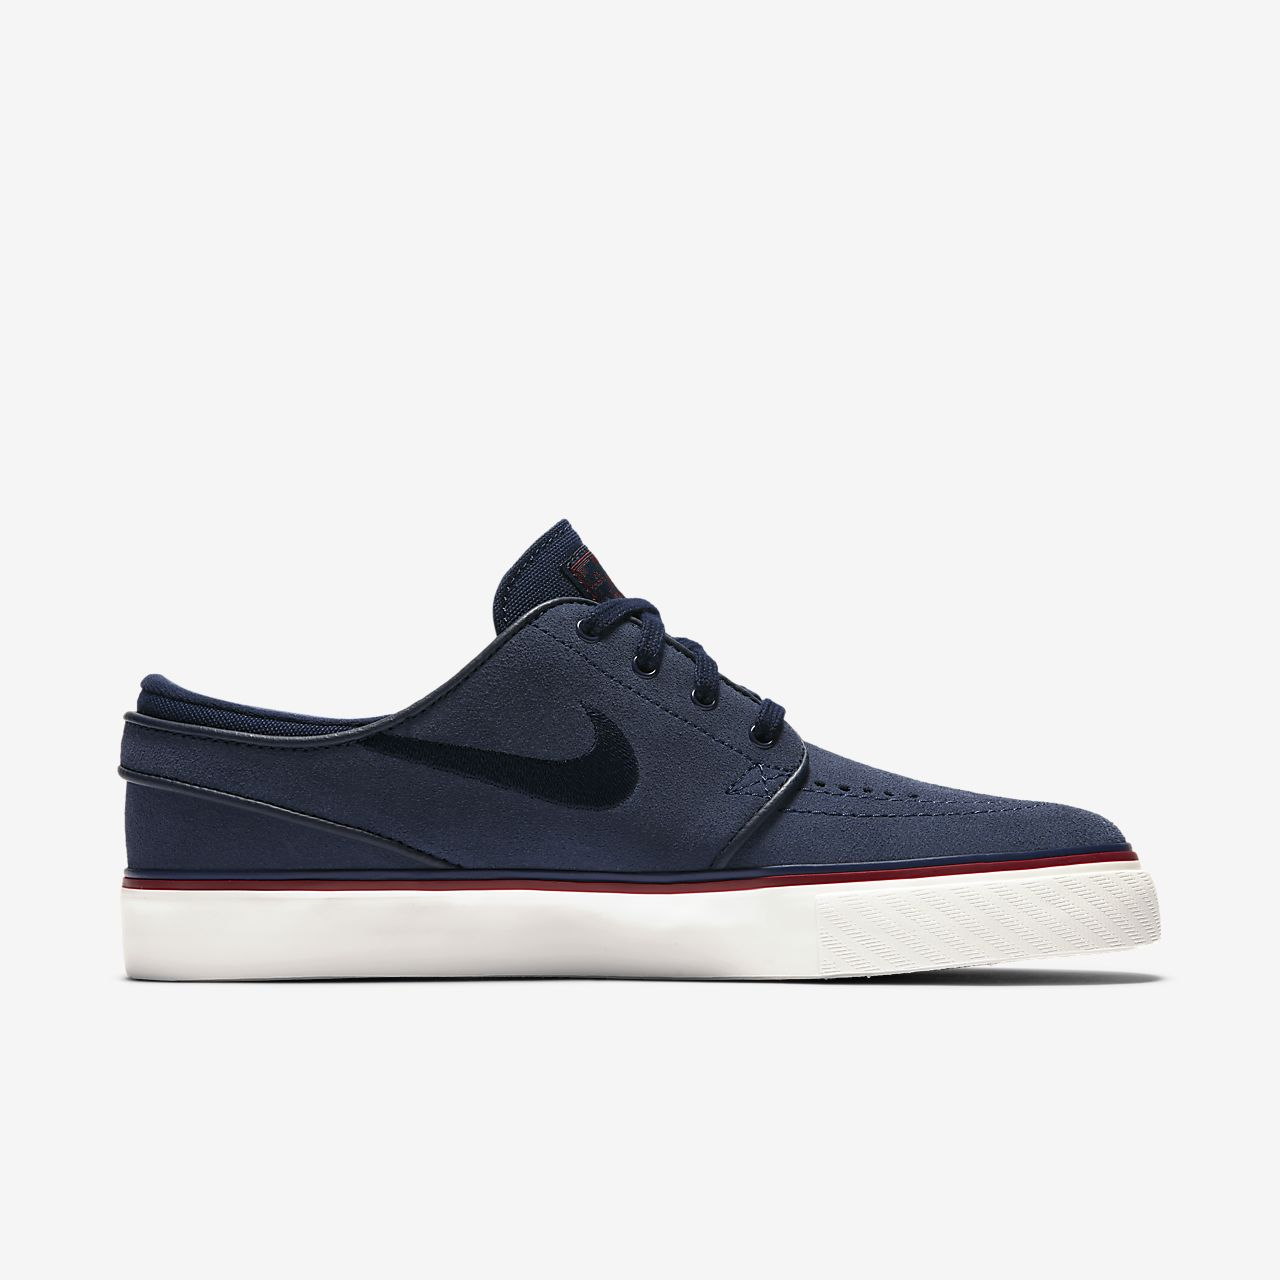 nike sb air zoom stefan janoski women 39 s skateboarding shoe. Black Bedroom Furniture Sets. Home Design Ideas